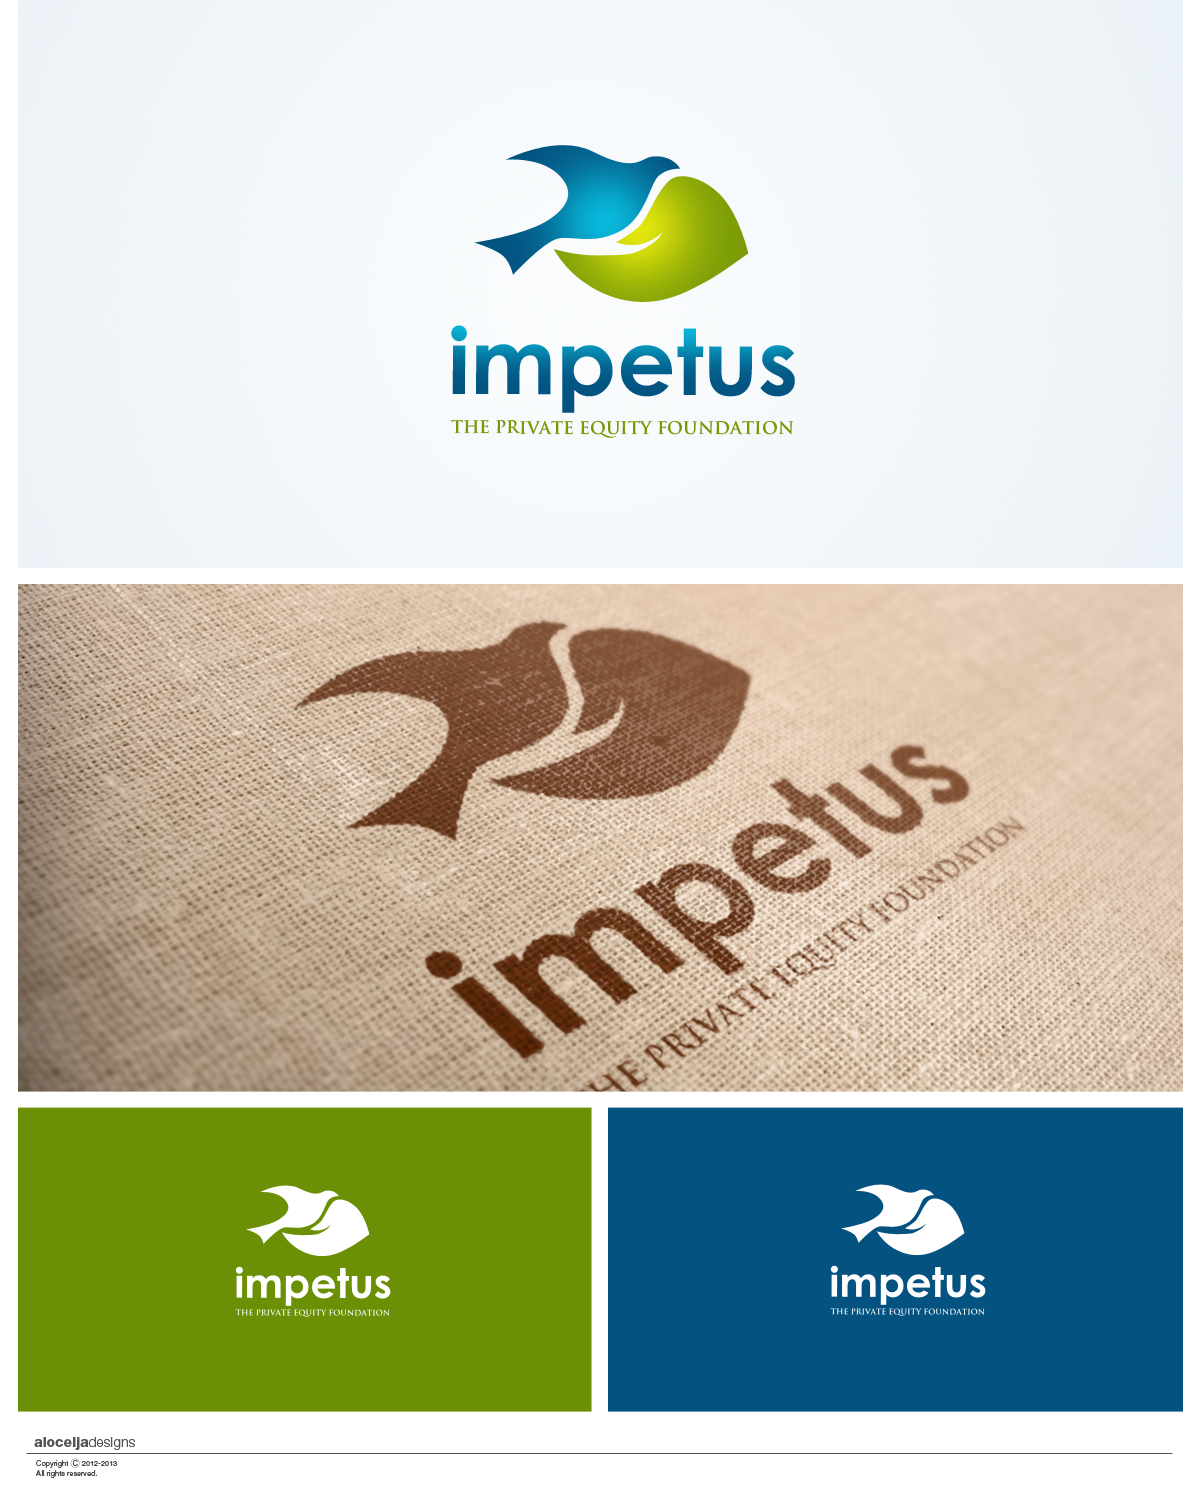 Logo Design by alocelja - Entry No. 33 in the Logo Design Contest New Logo Design for Impetus - The Private Equity Foundation.